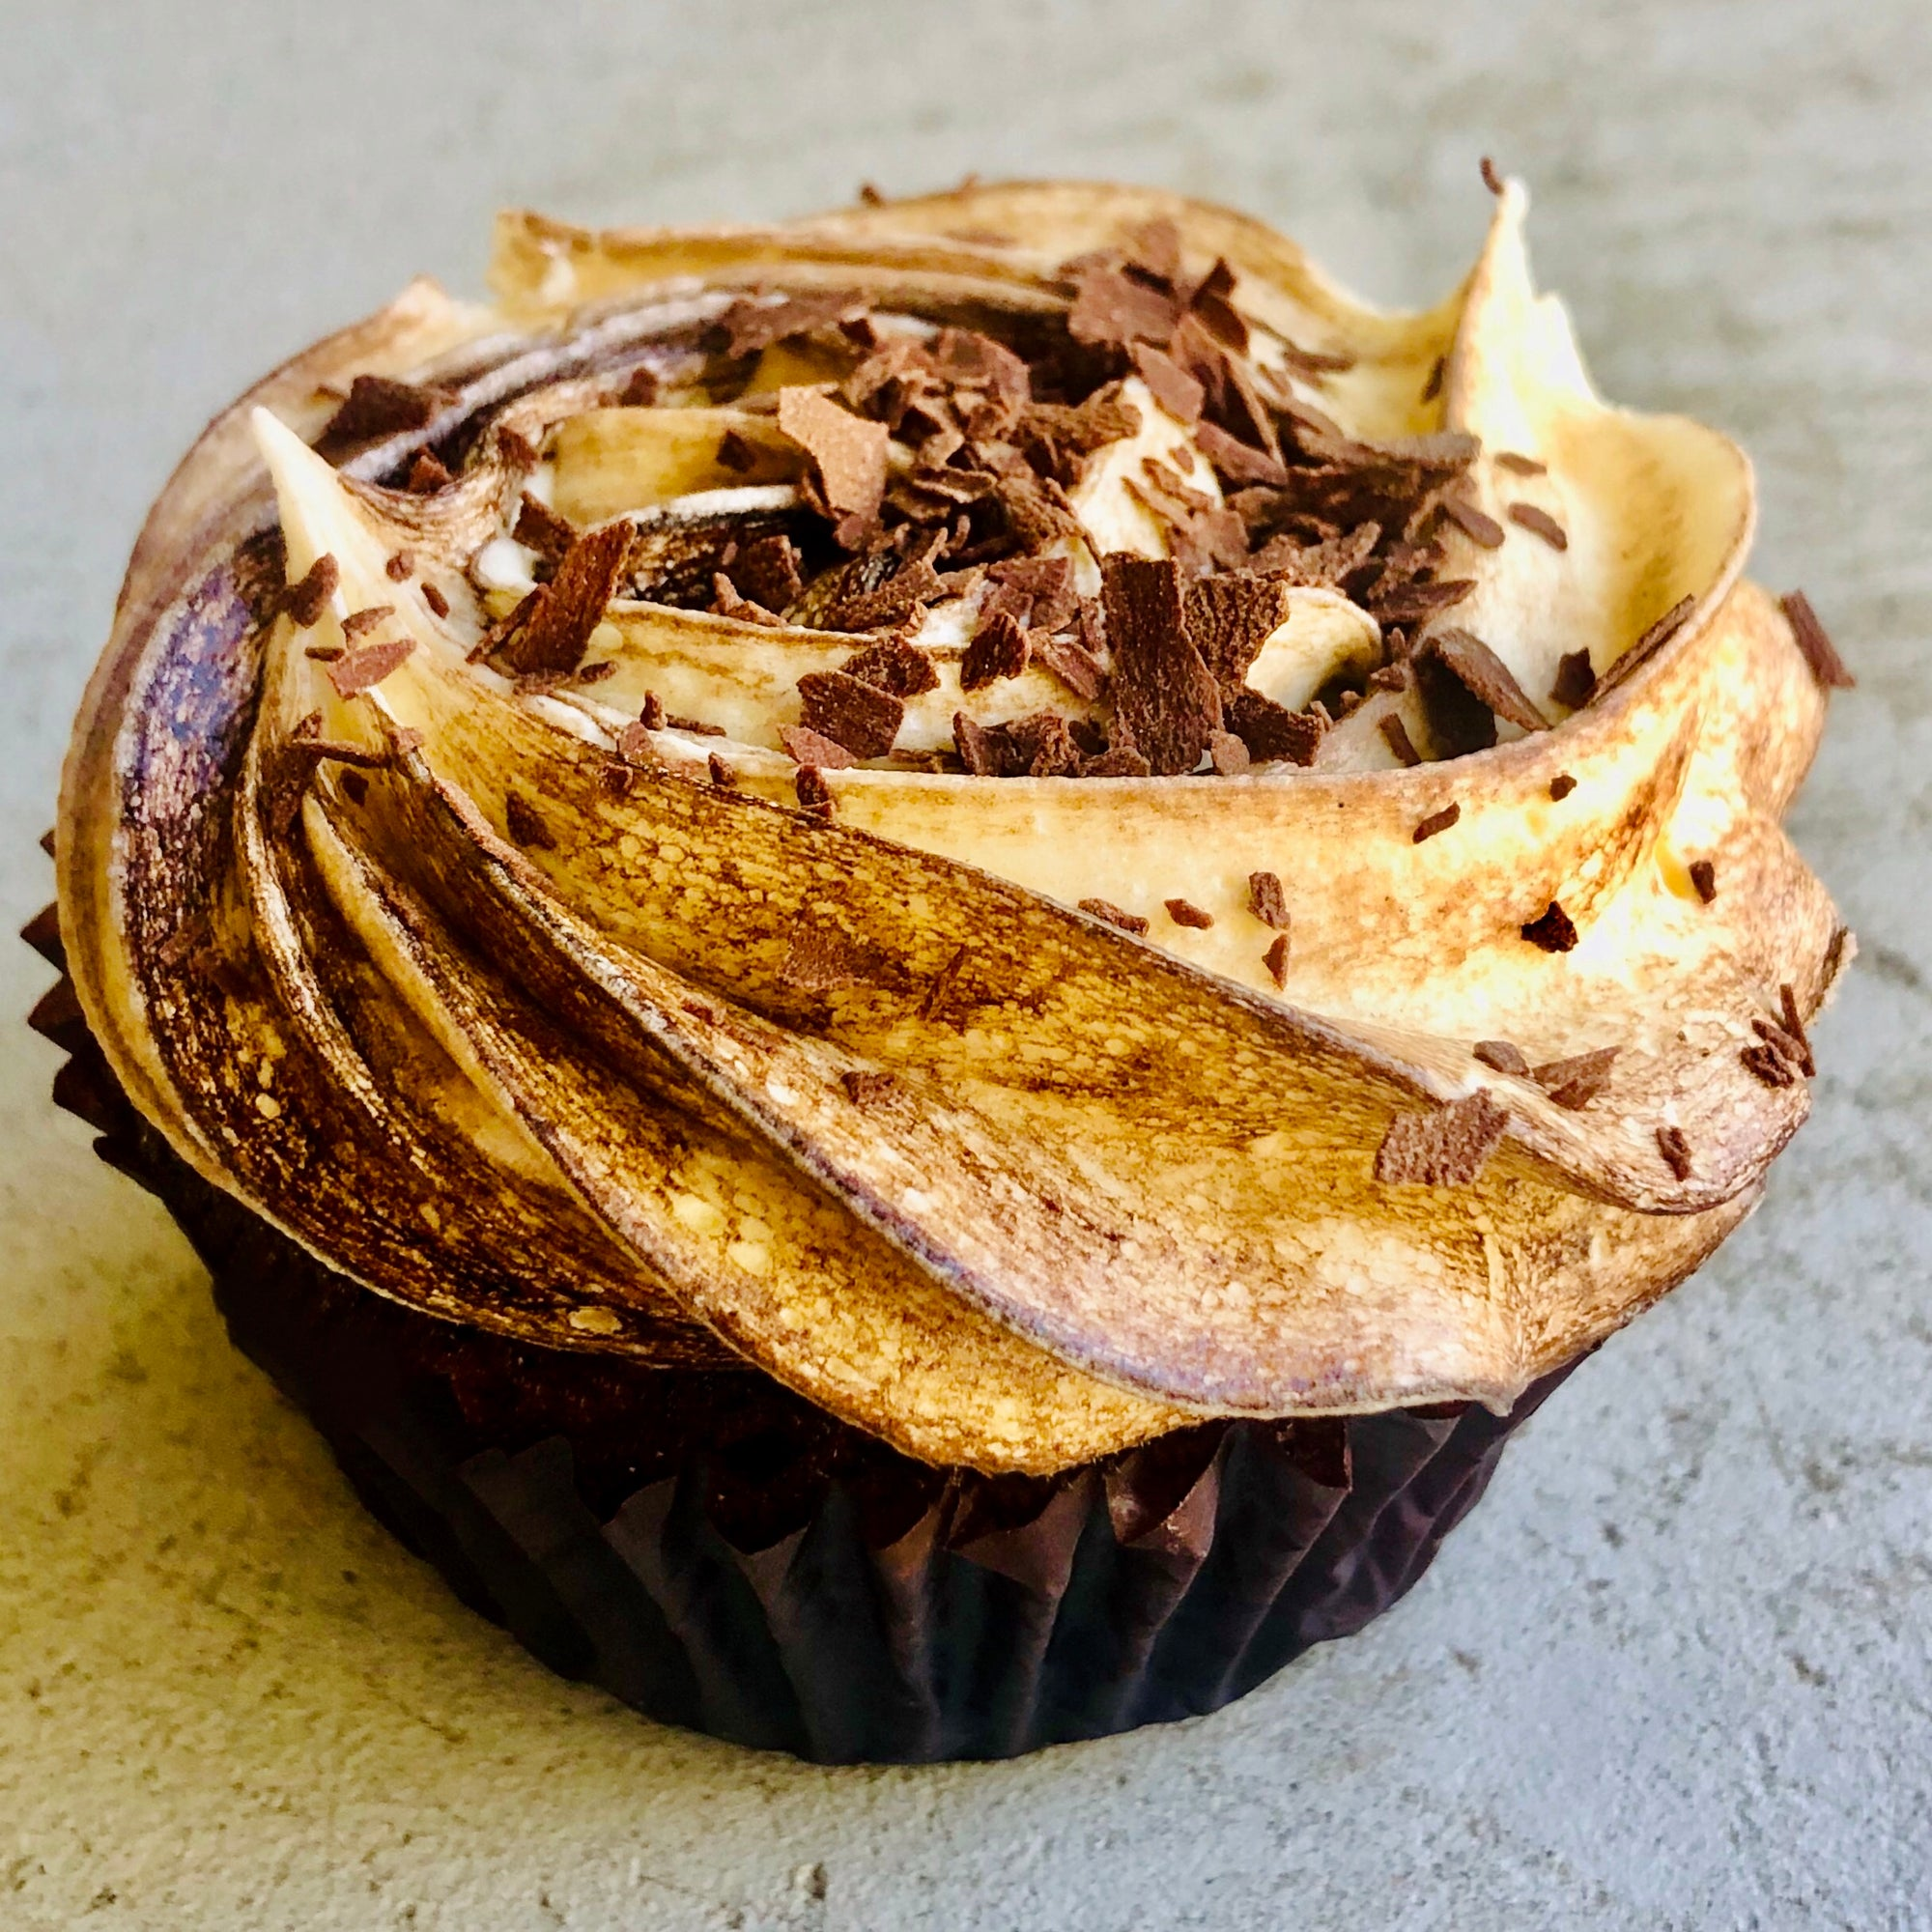 Chocolate cupcake with swirled chocolate and vanilla butter cream and sprinkled with chocolate crumb